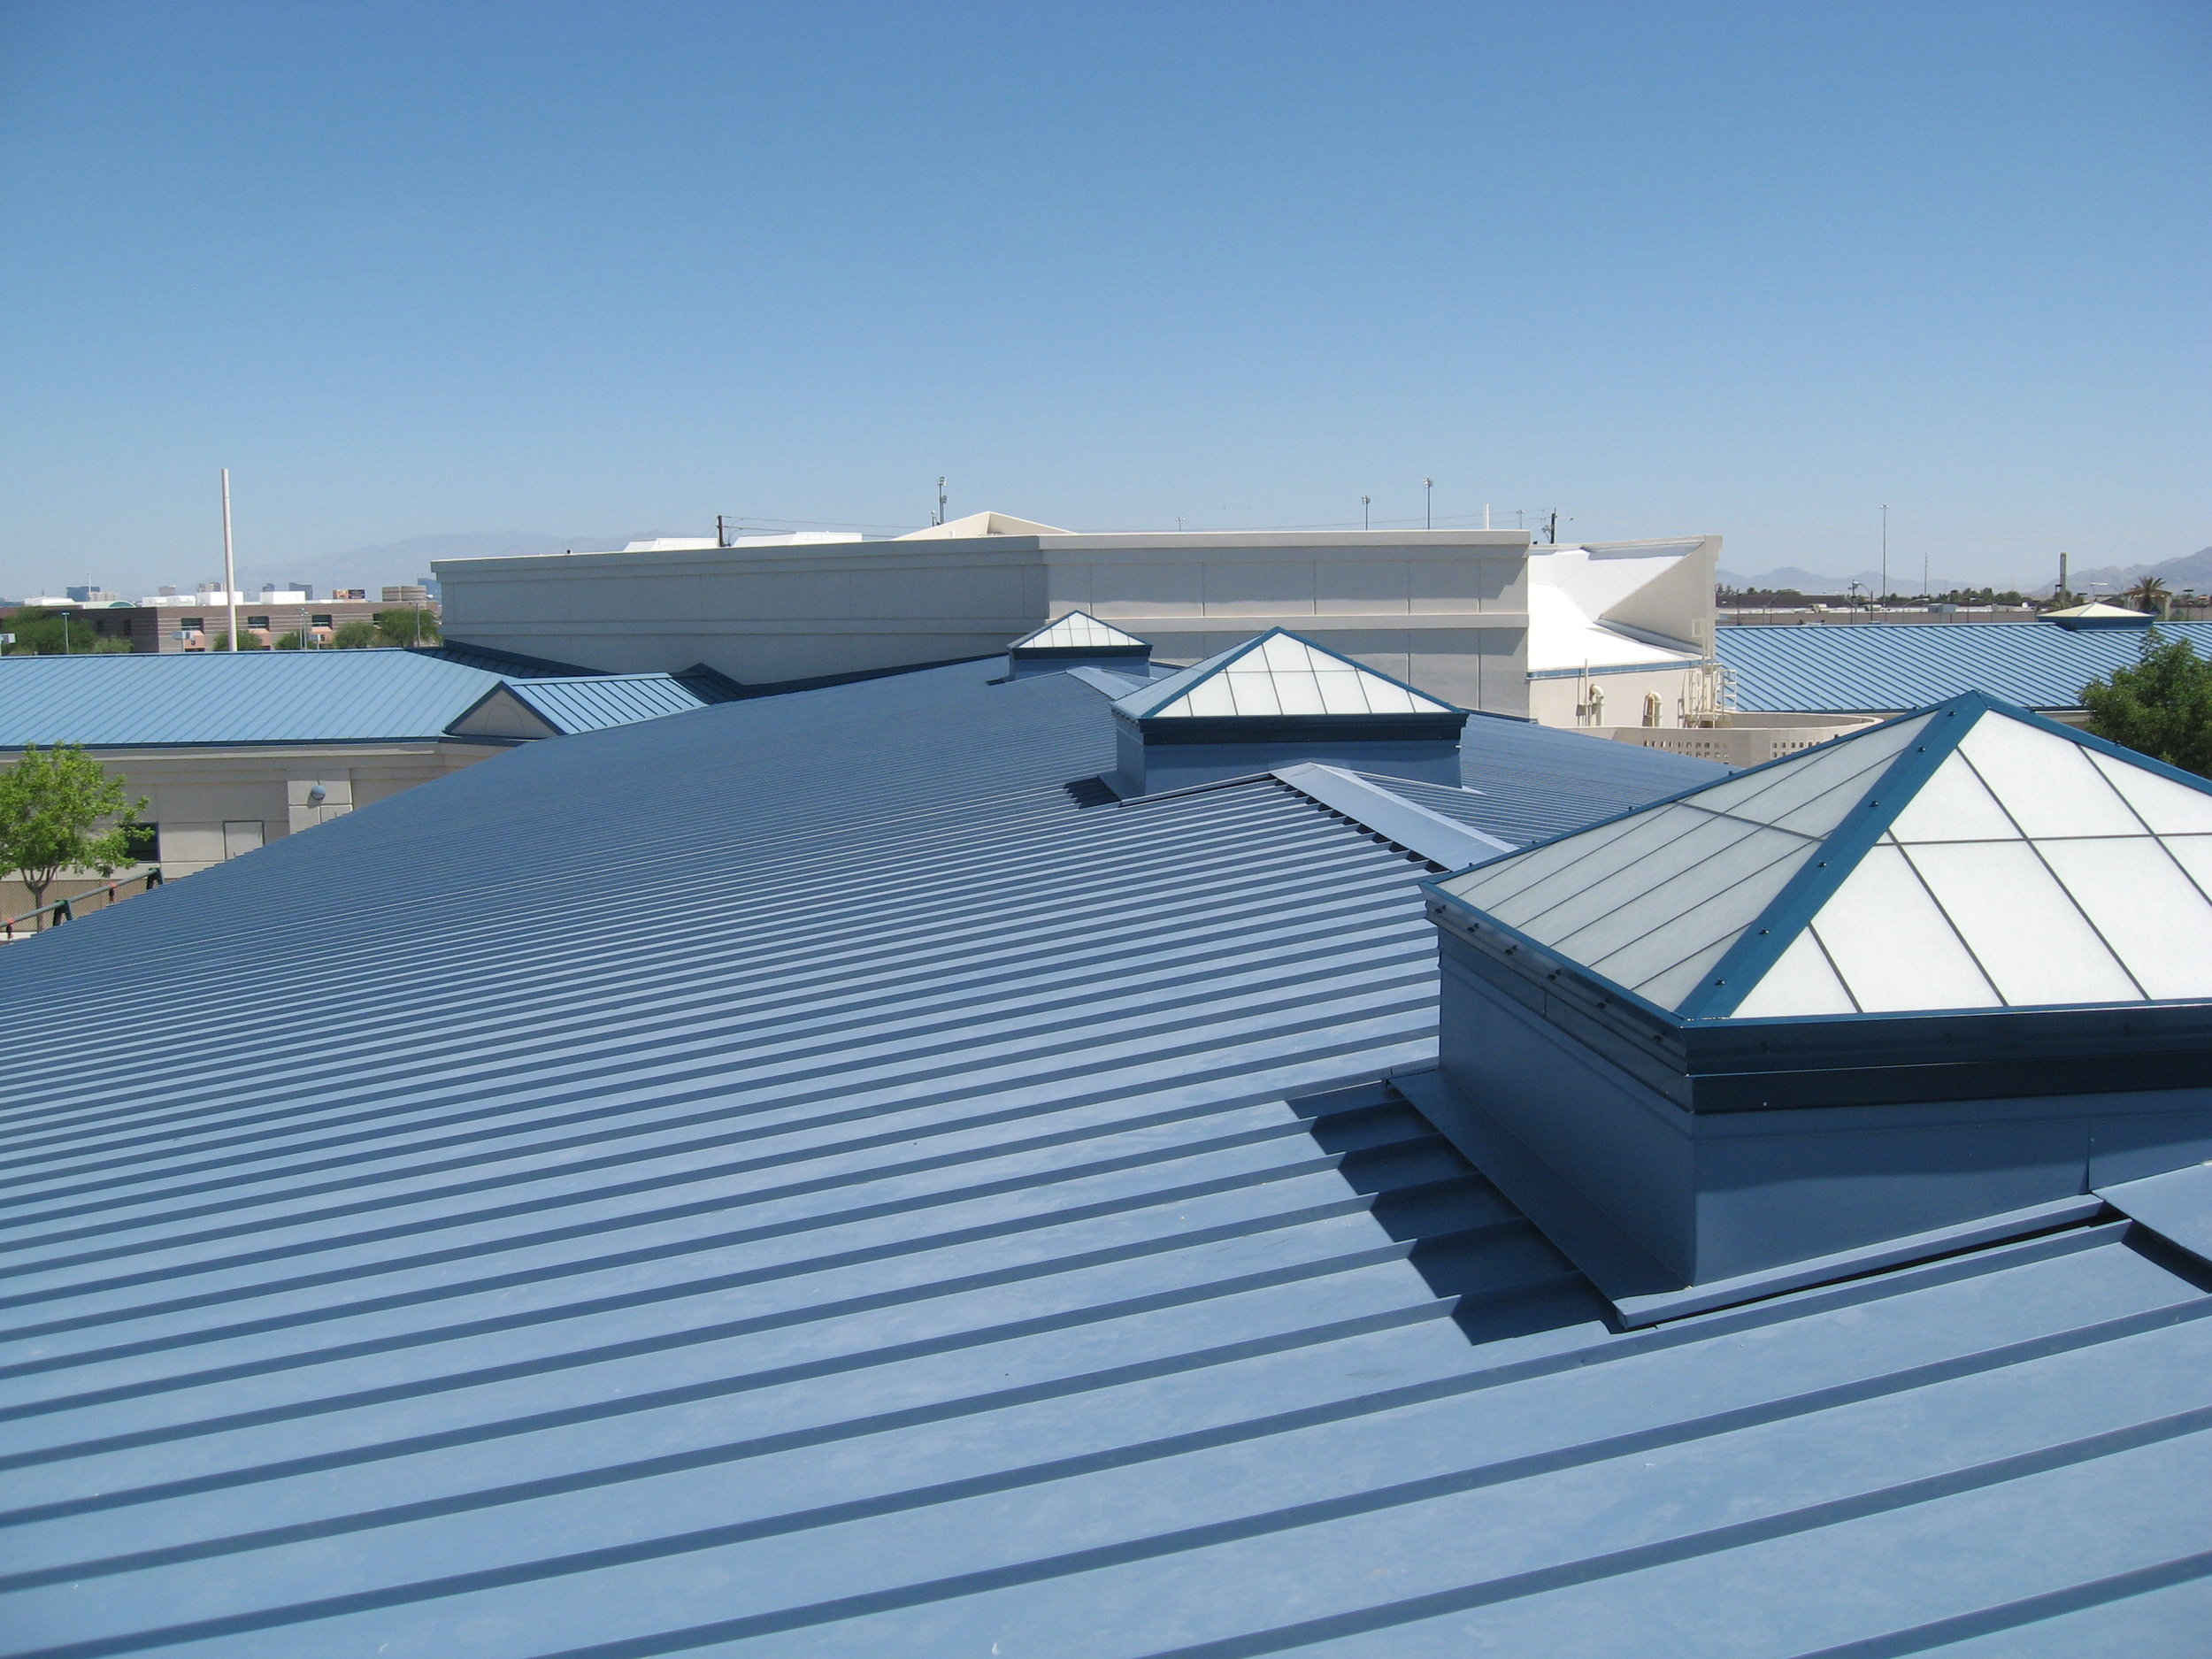 commercial-roofing-companies.jpg